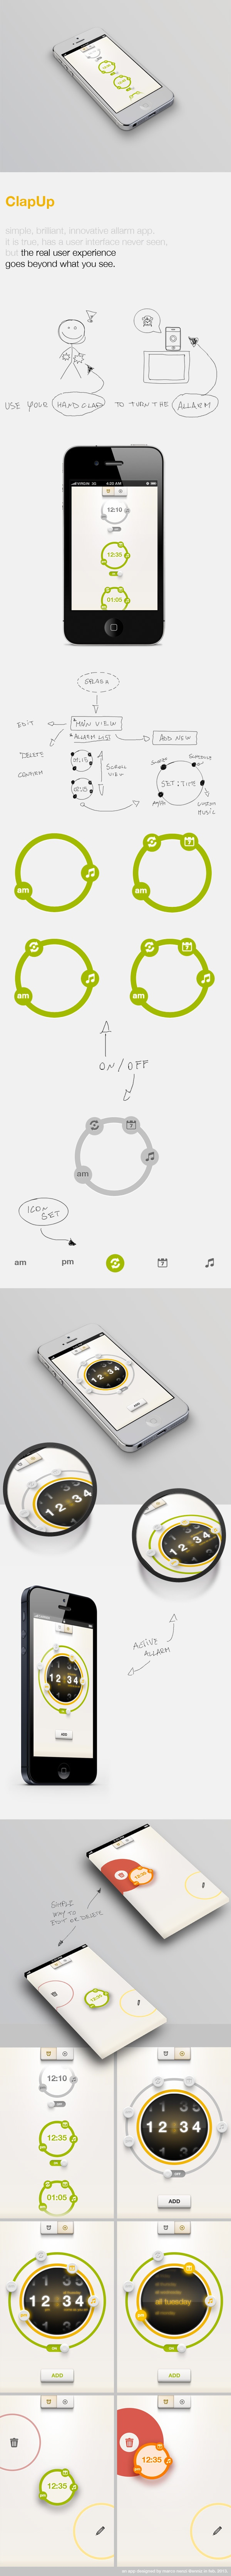 ClapUp - iOS simple and brillant allarm's App by Marco Nenzi, via Behance